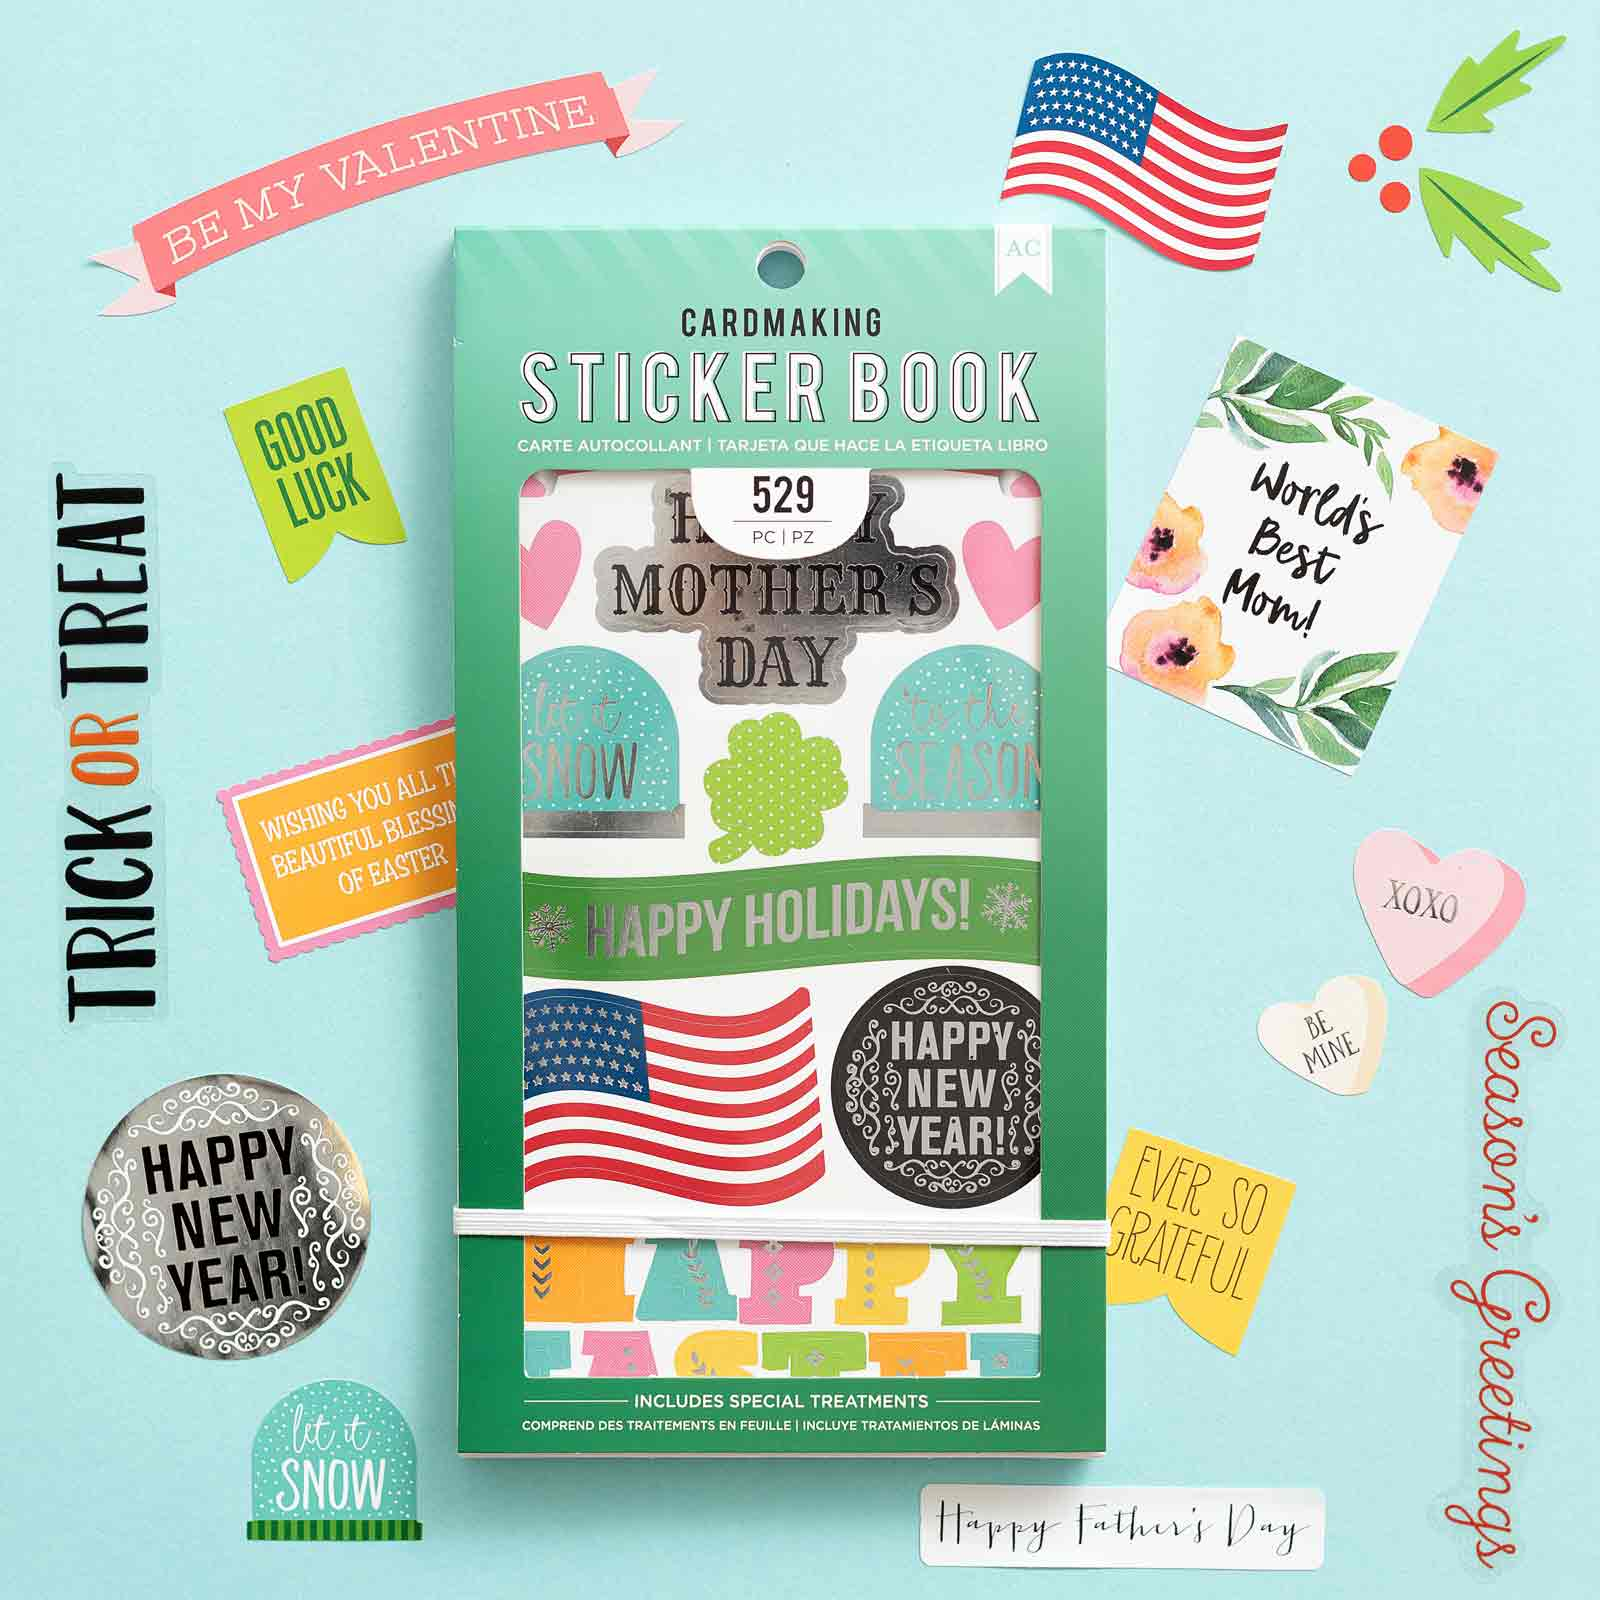 349626_AC_Cardmaking_StickerBook_Styled-2